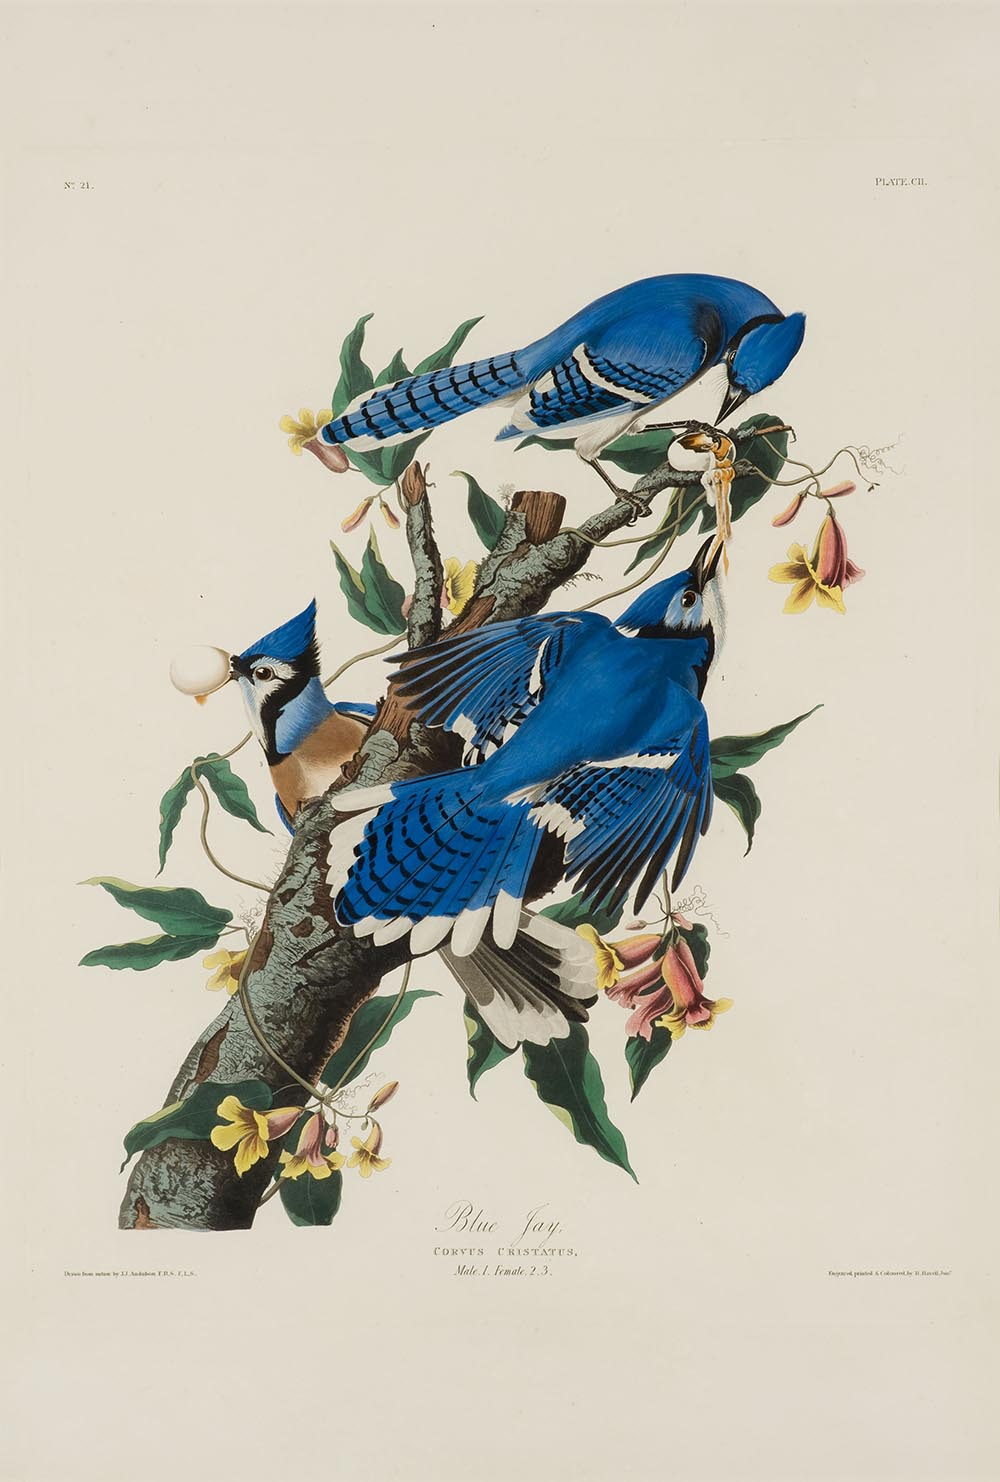 Blue Jay at Reynolda House Museum of American Art - Scott Liveng